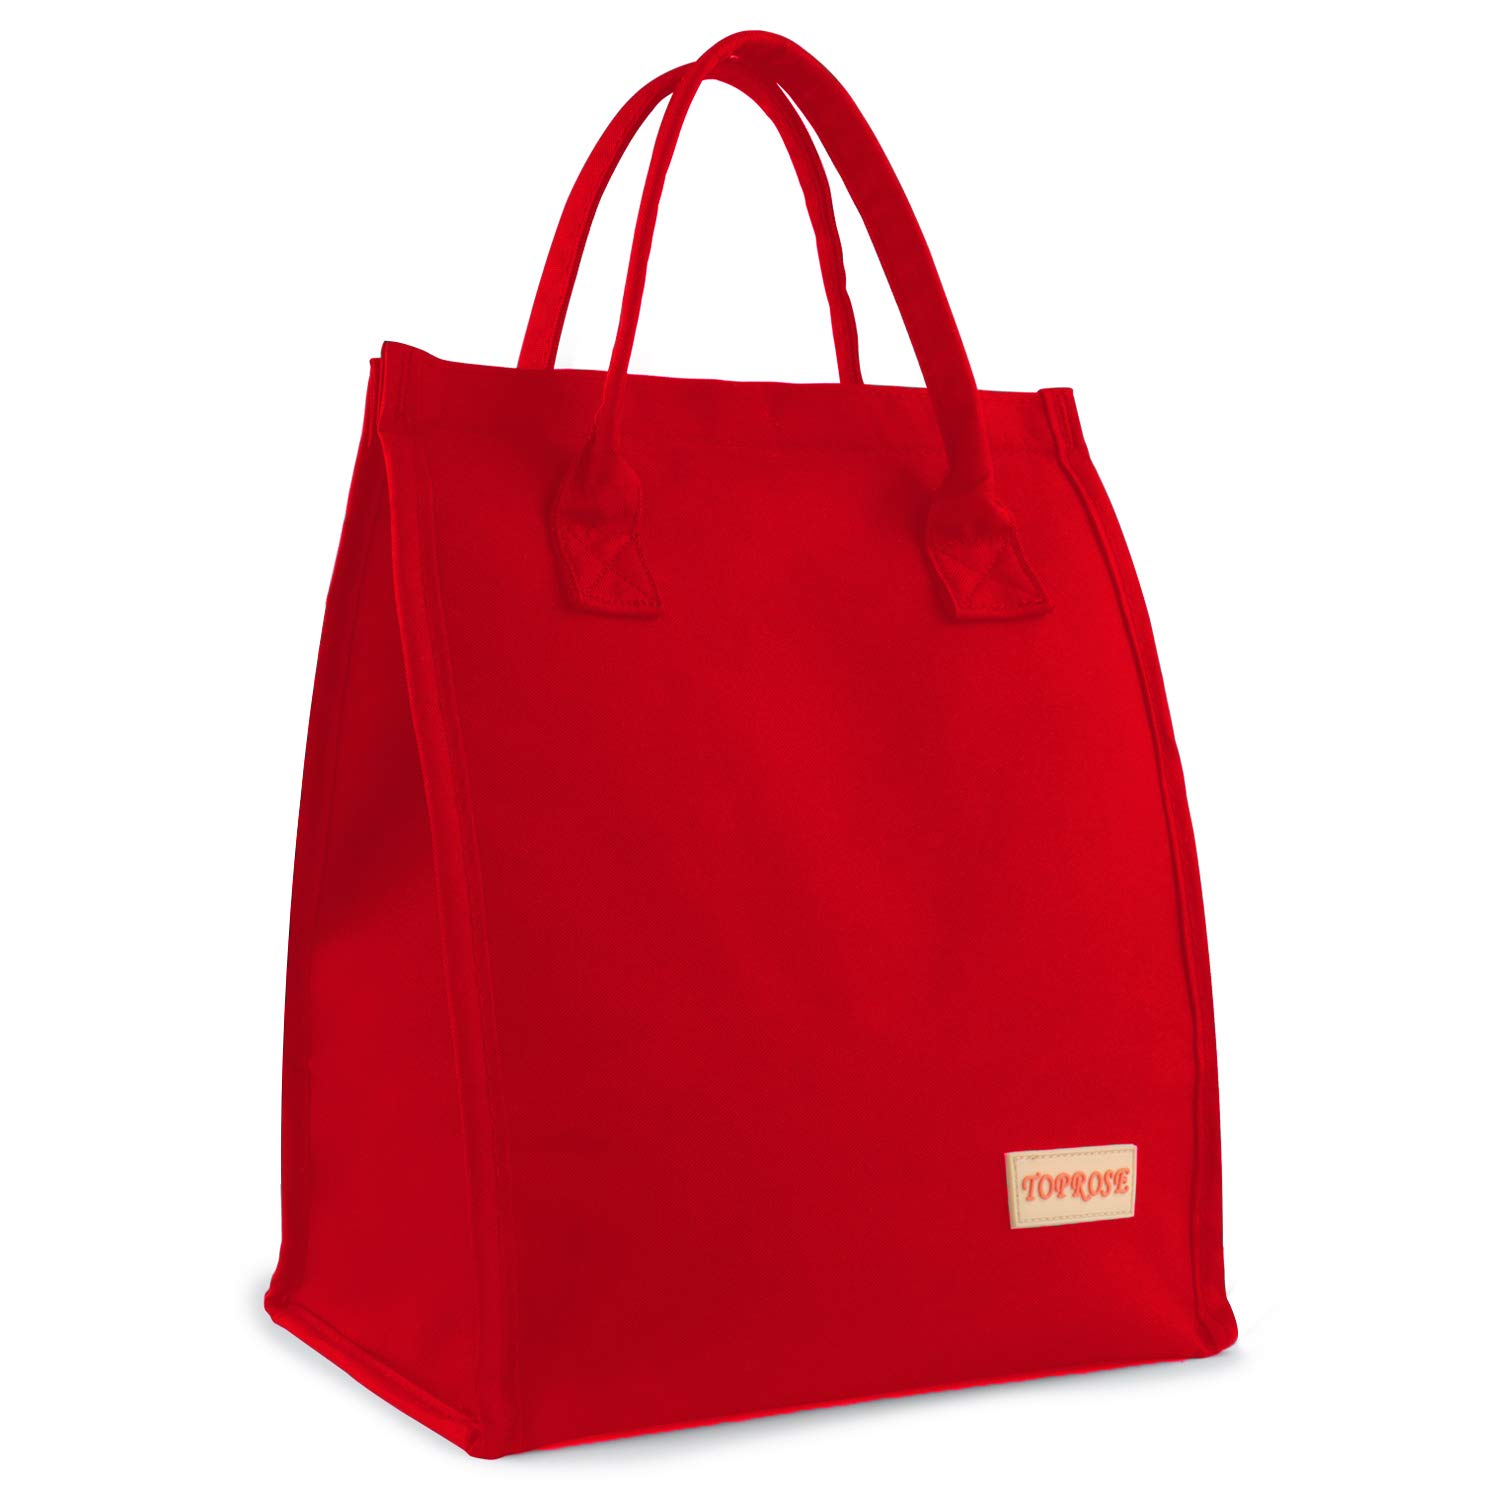 Lunch Bags for Women Men Insulated Lunch Tote Cooler Bag Roomy Reusable Lunch Boxes for School Office Outdoors Meal Prep Bag Lunch Organizer Lunch Holder Hook & Loop Lunch Cooler Bag (Red)